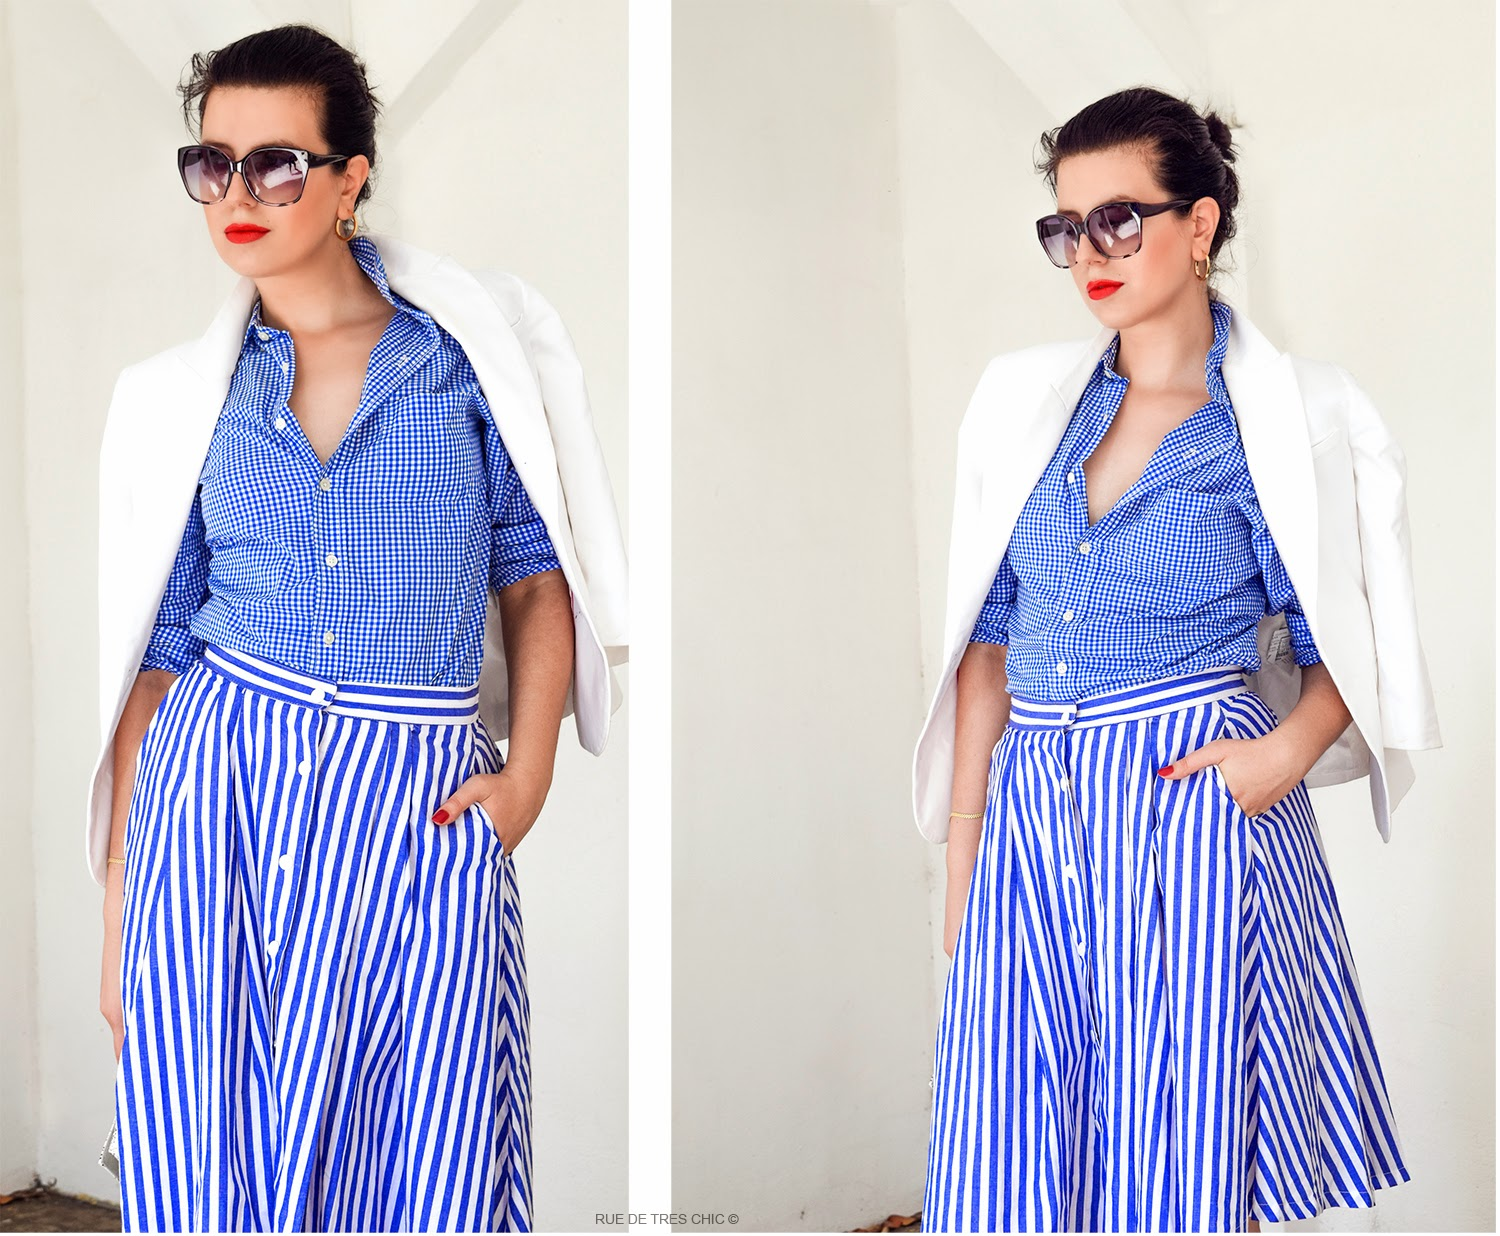 Gingham Fashion Trend 2015 Styling Outfit Ideas